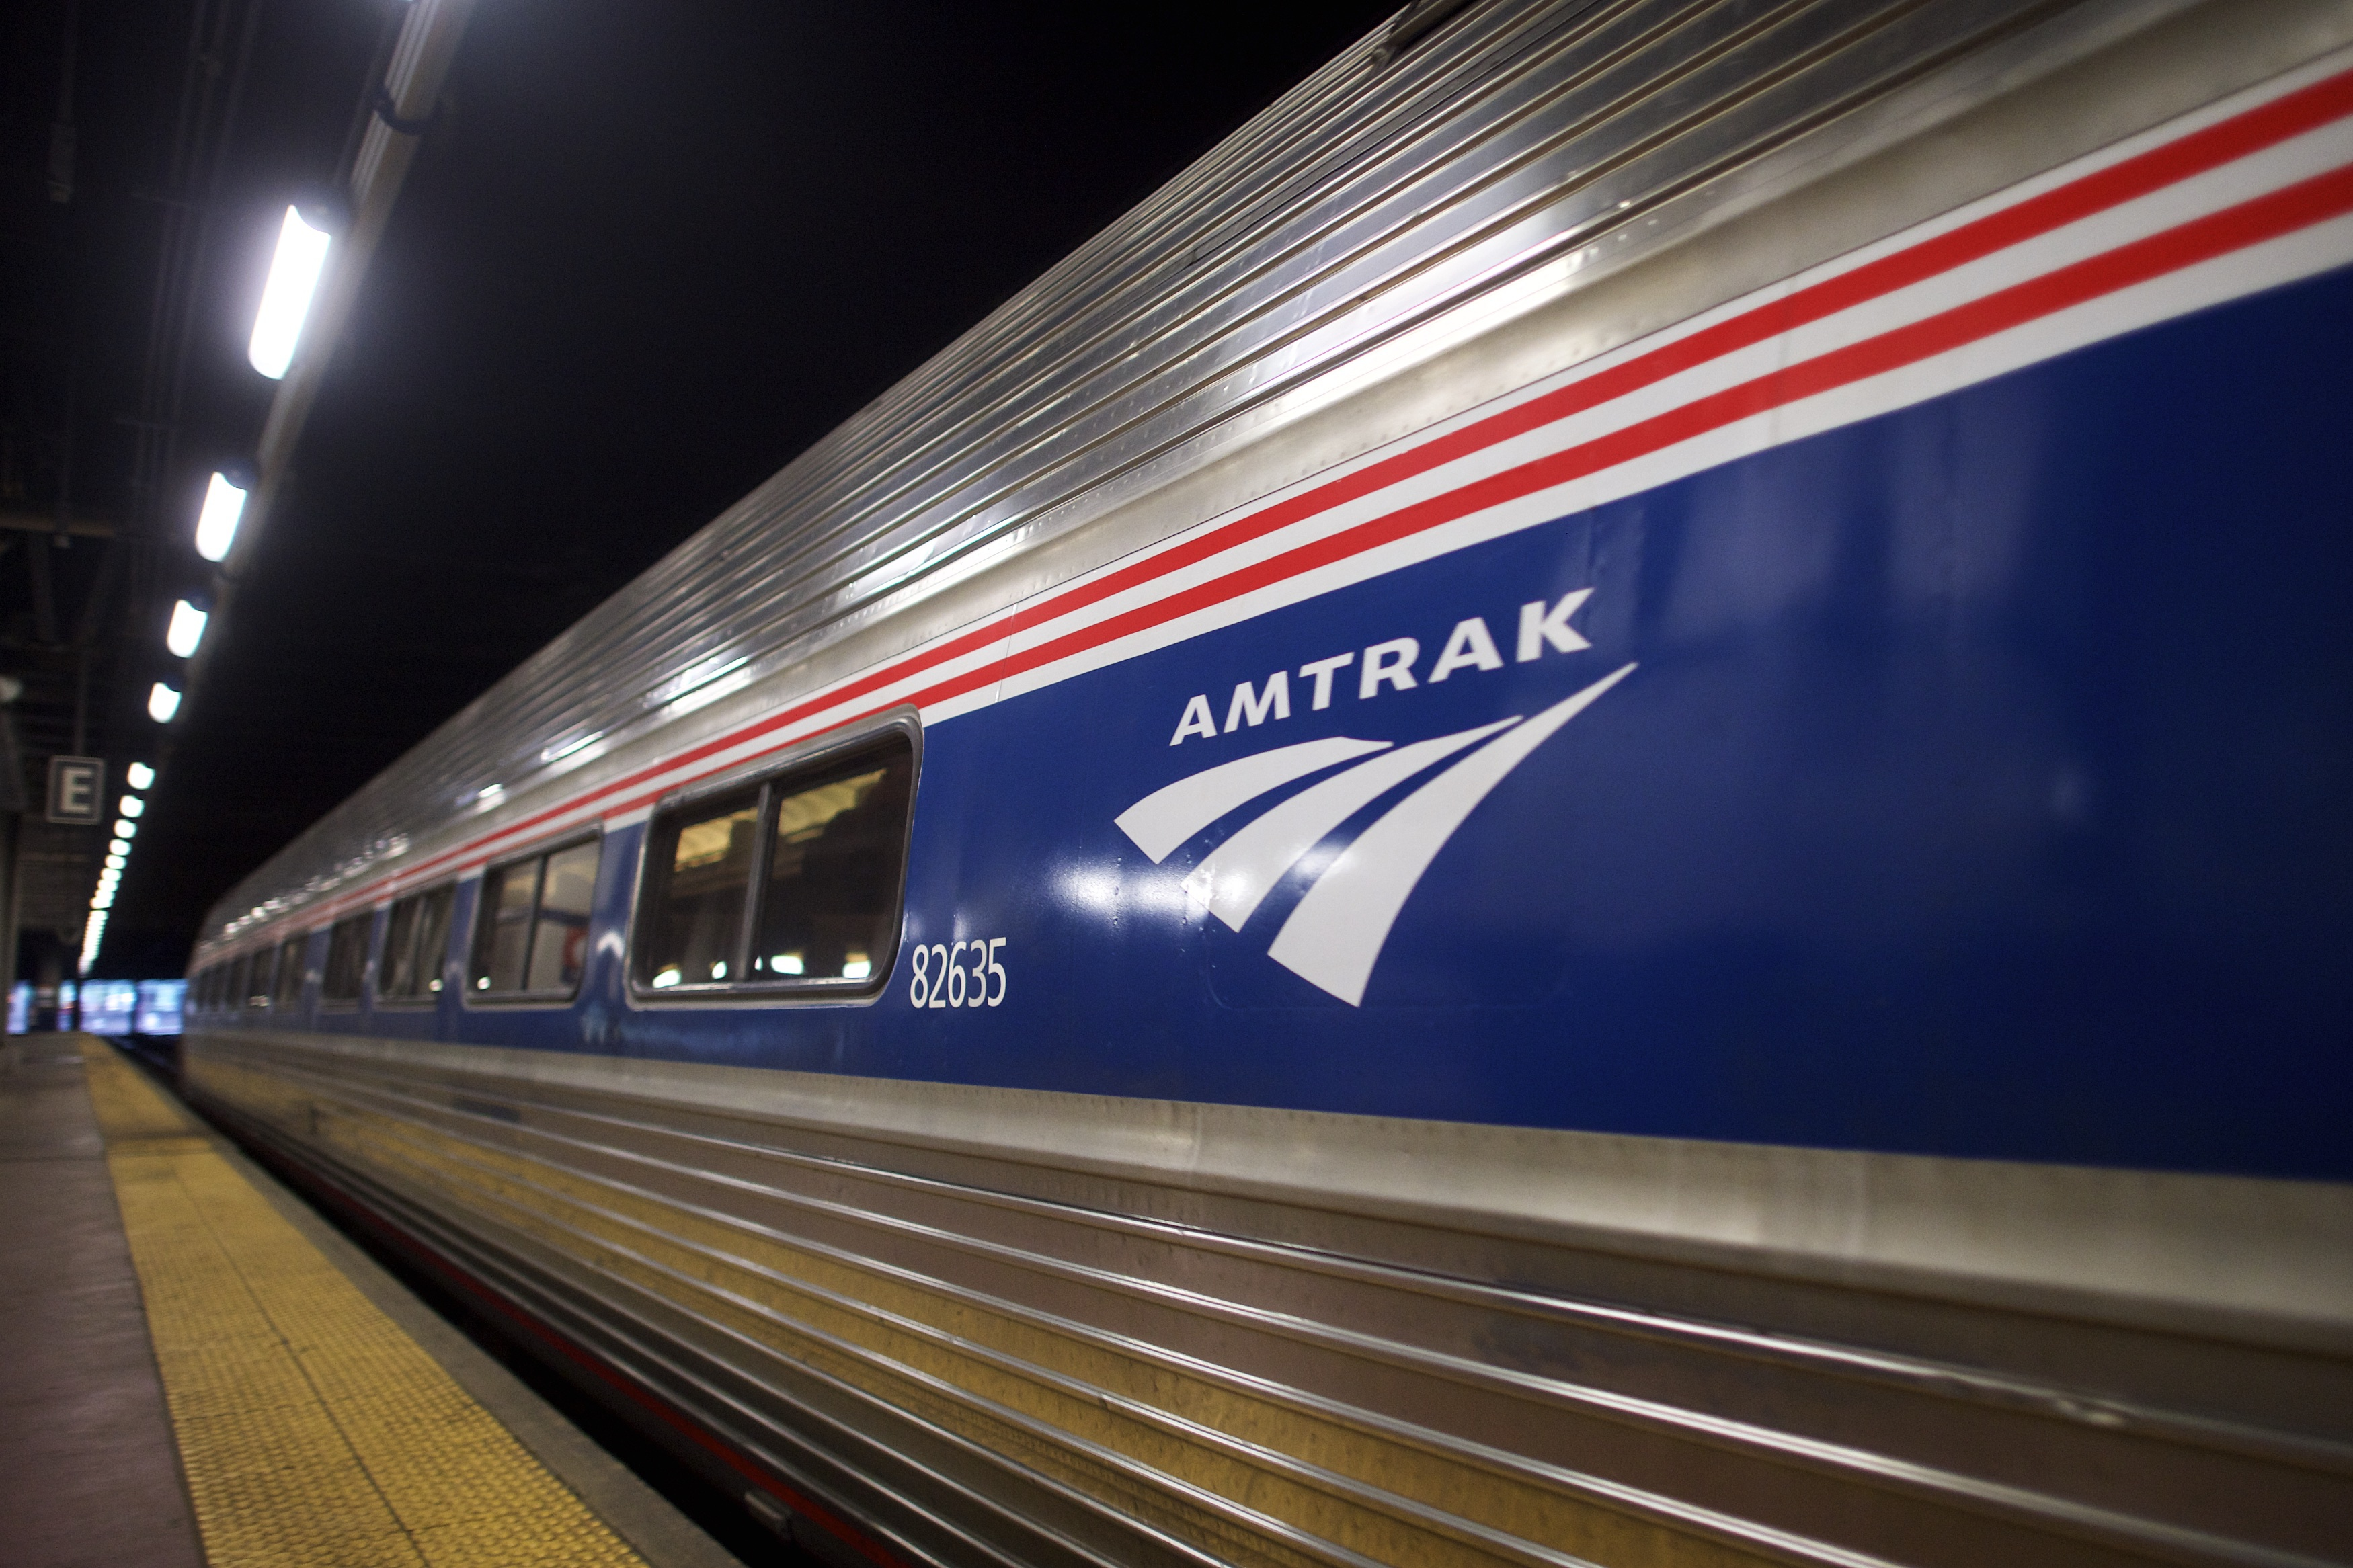 La East Coast con i treni Amtrak da Washington a New York.